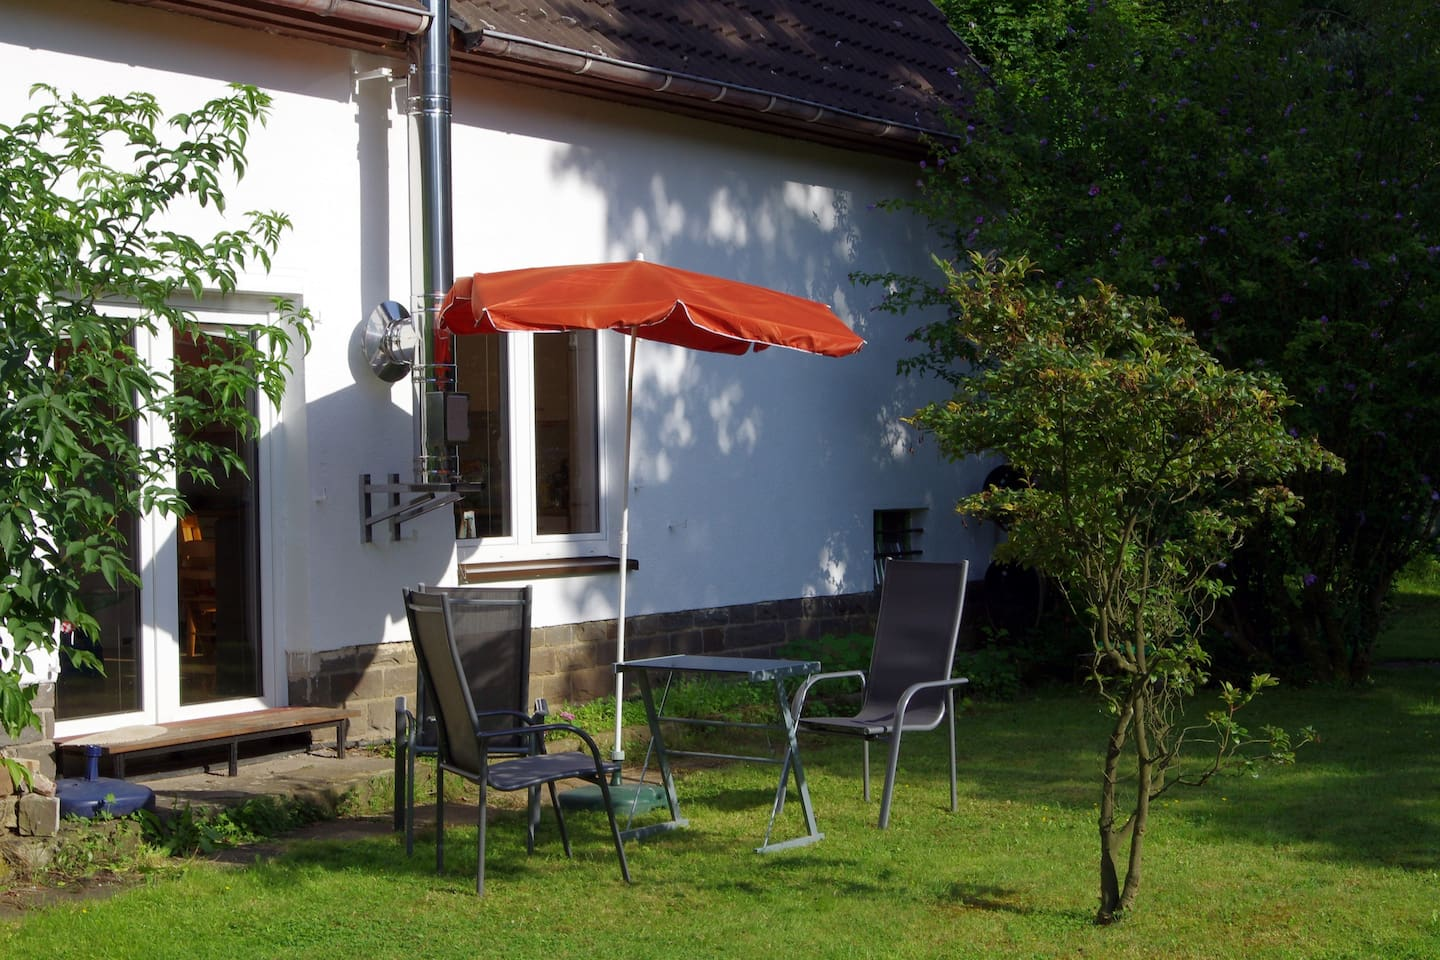 Gartenseite, links die Terrassentür zur Wohnung / Seats for guests on the lawn,  on the left: back entrance to the house